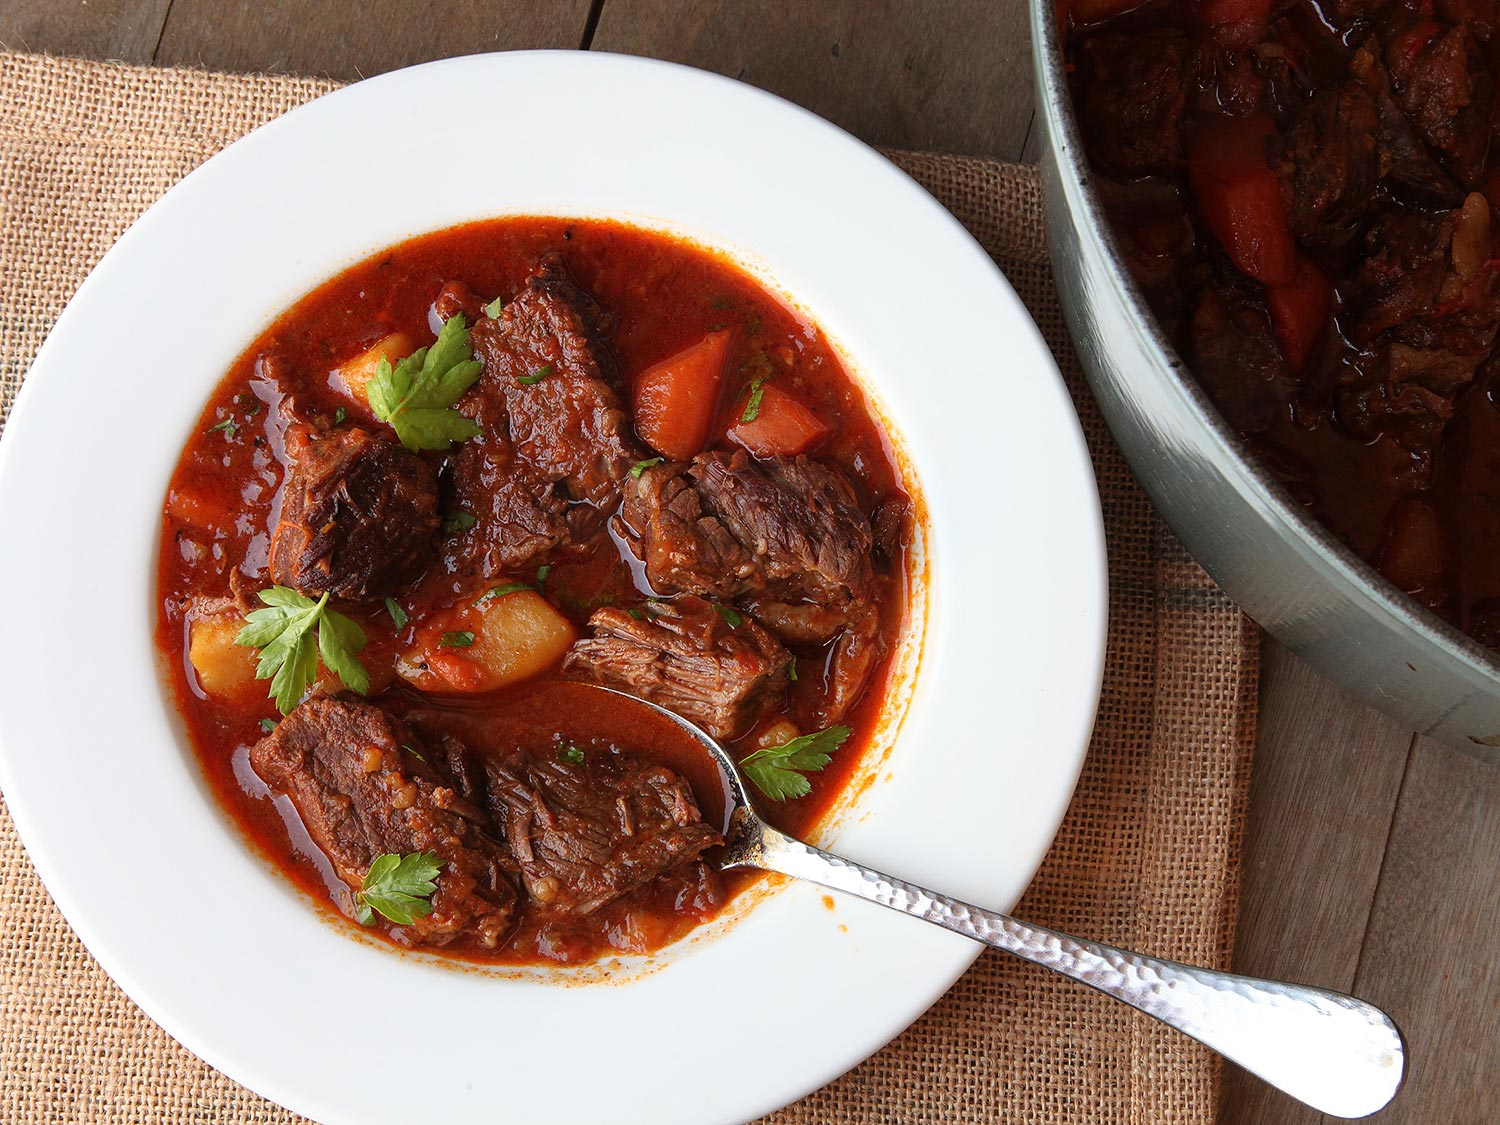 Healthy Food Fixes - Quick Hungarian Goulash